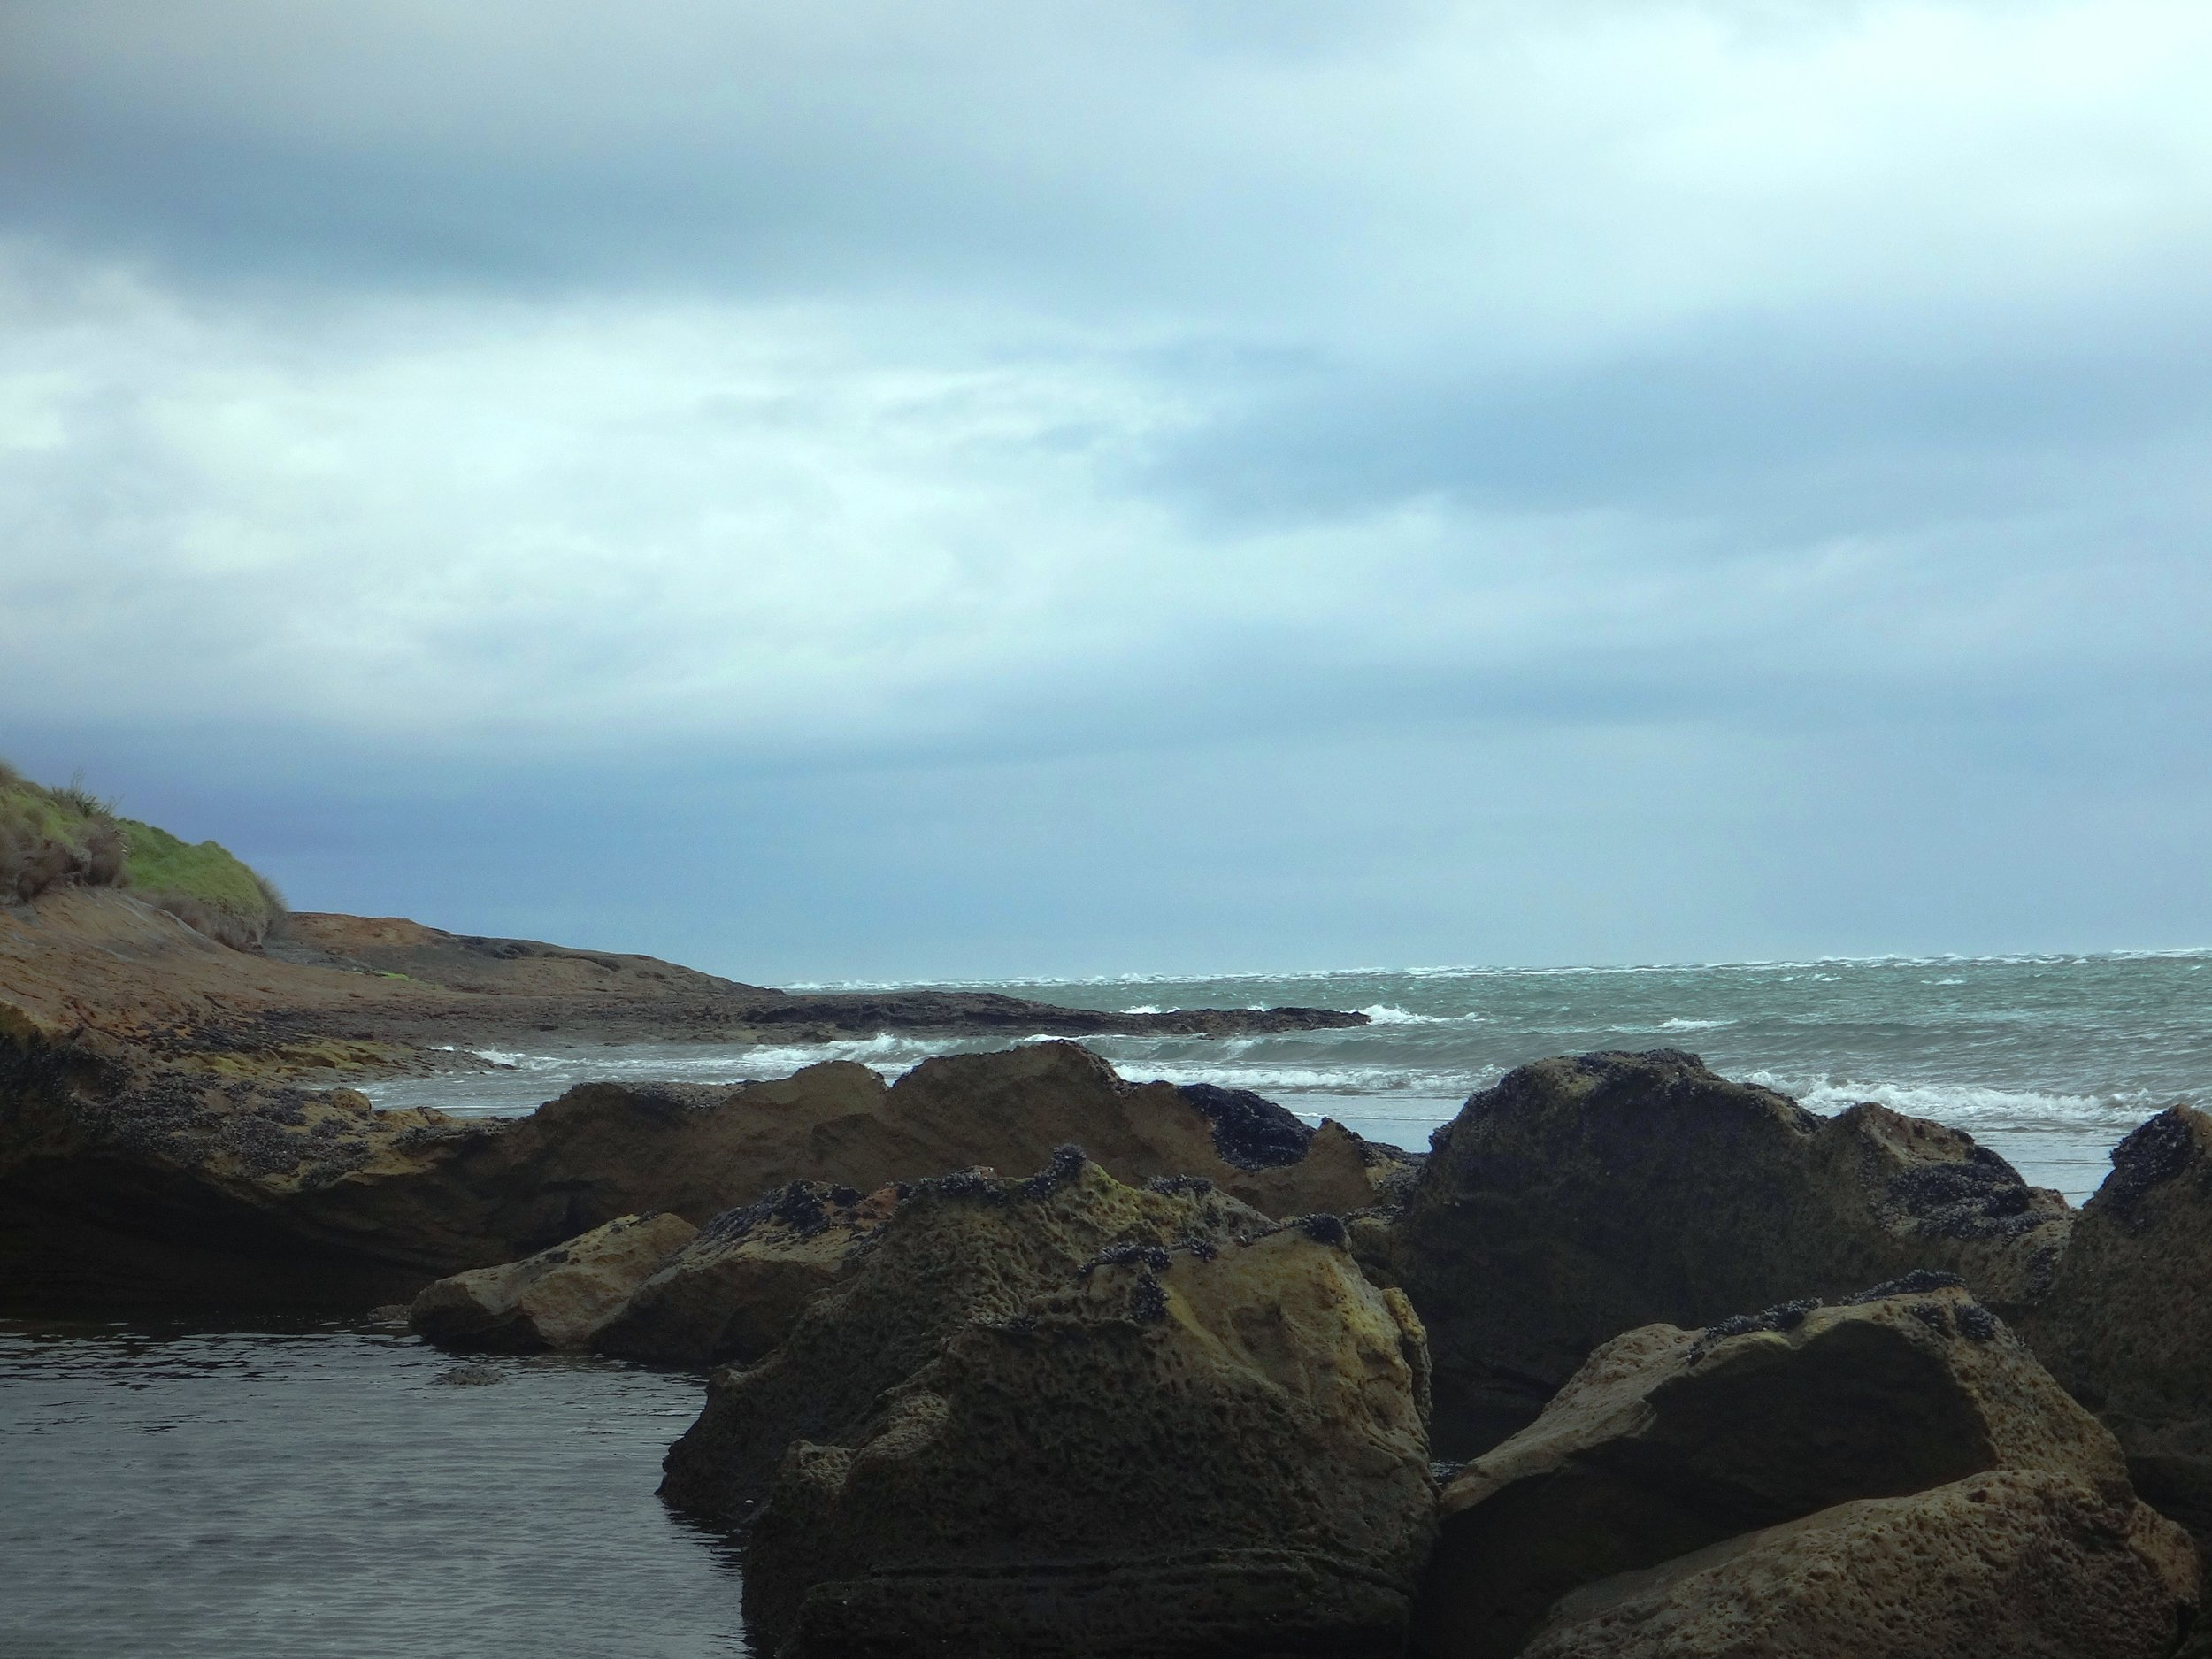 Rocks, rock-pools and harbour waves.